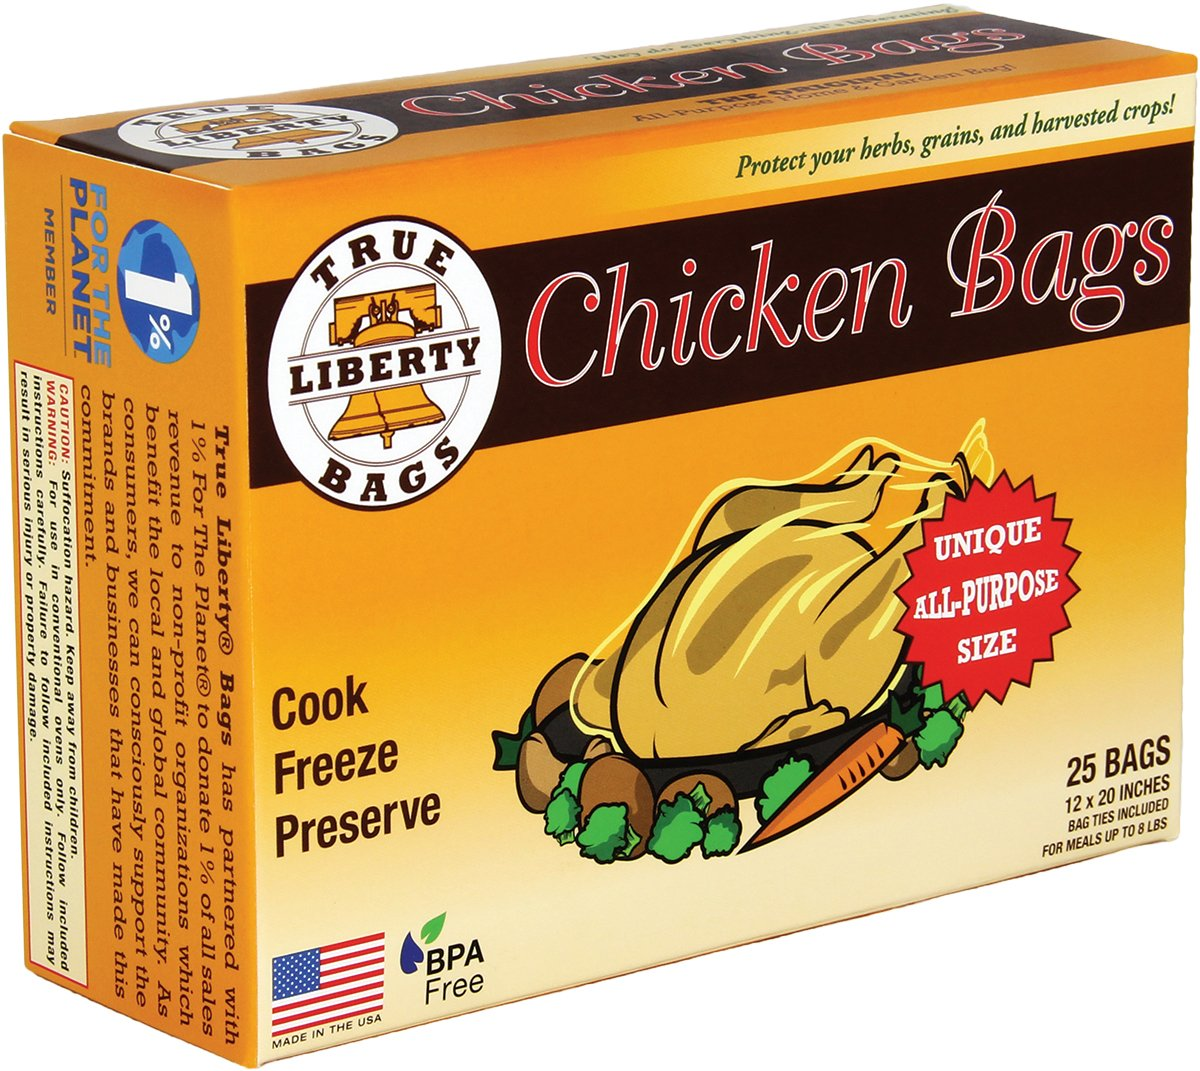 "True Liberty Bags- Chicken Bags- 25 Pack- All Purpose Home and Garden Bags- 12"" x 20""- Clear"